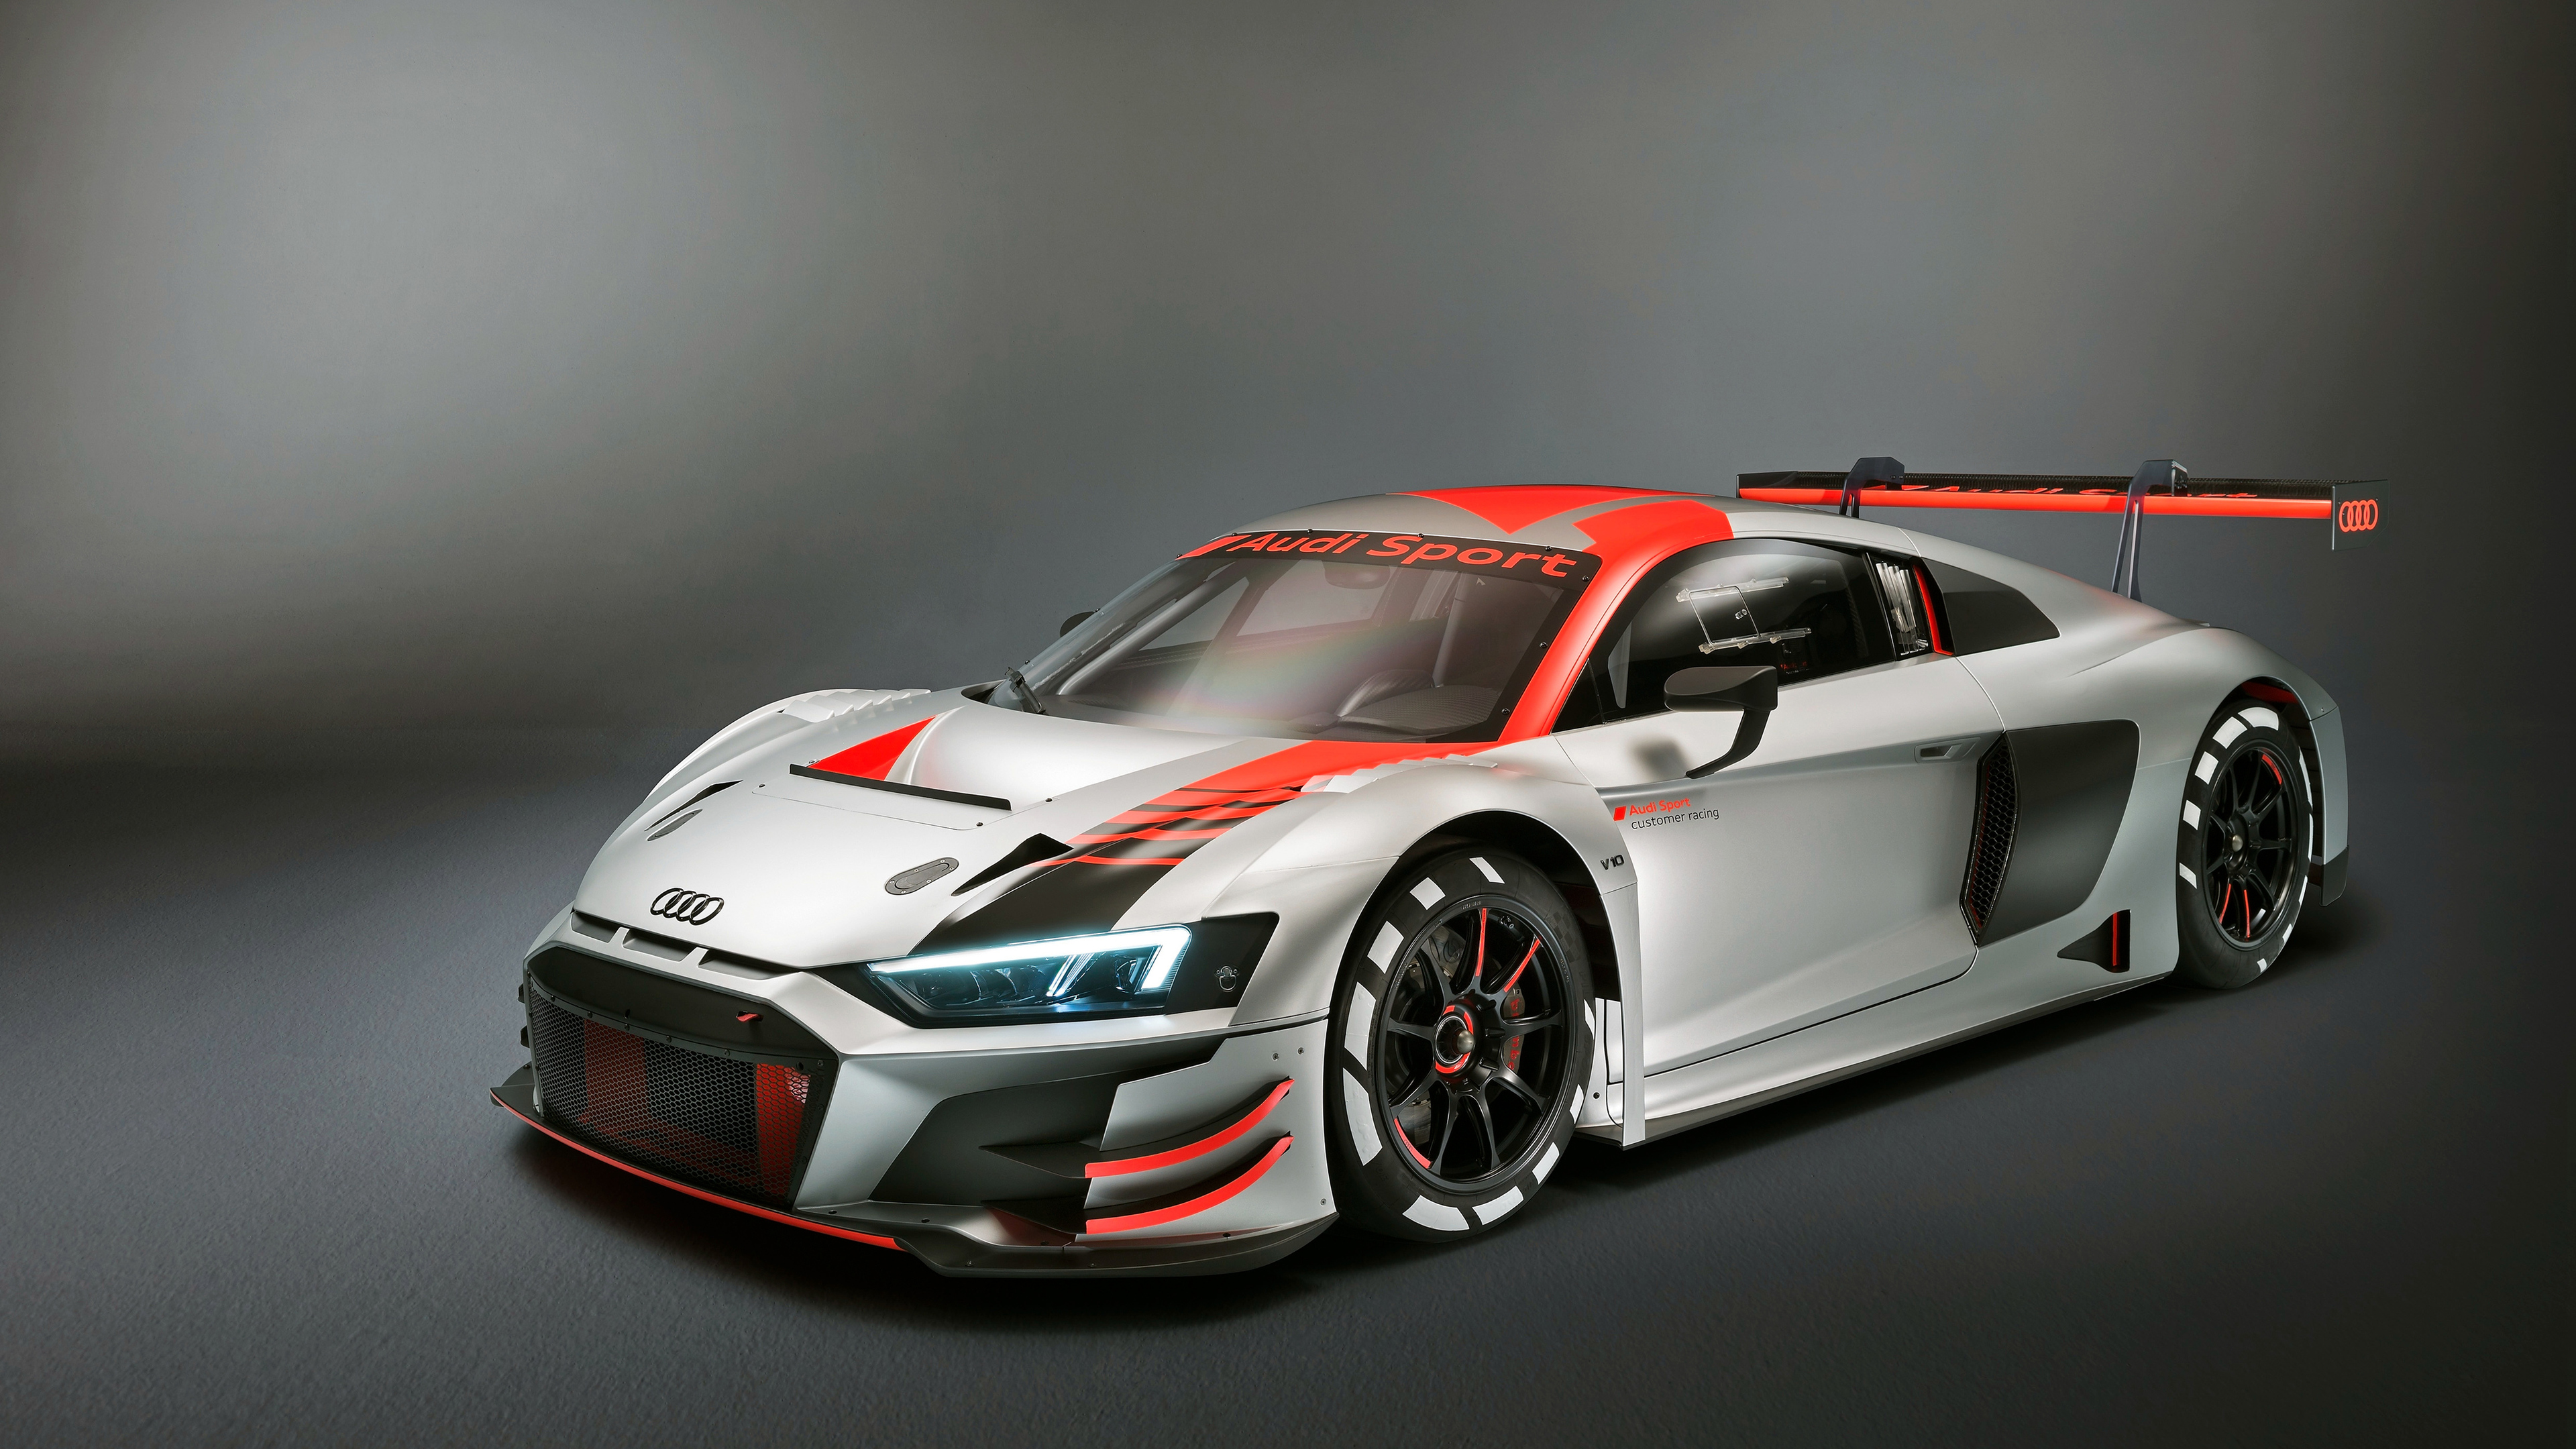 audi r8 lms 2019 1539792882 - Audi R8 LMS 2019 - hd-wallpapers, cars wallpapers, audi wallpapers, audi r8 wallpapers, audi r8 lms wallpapers, 4k-wallpapers, 2019 cars wallpapers